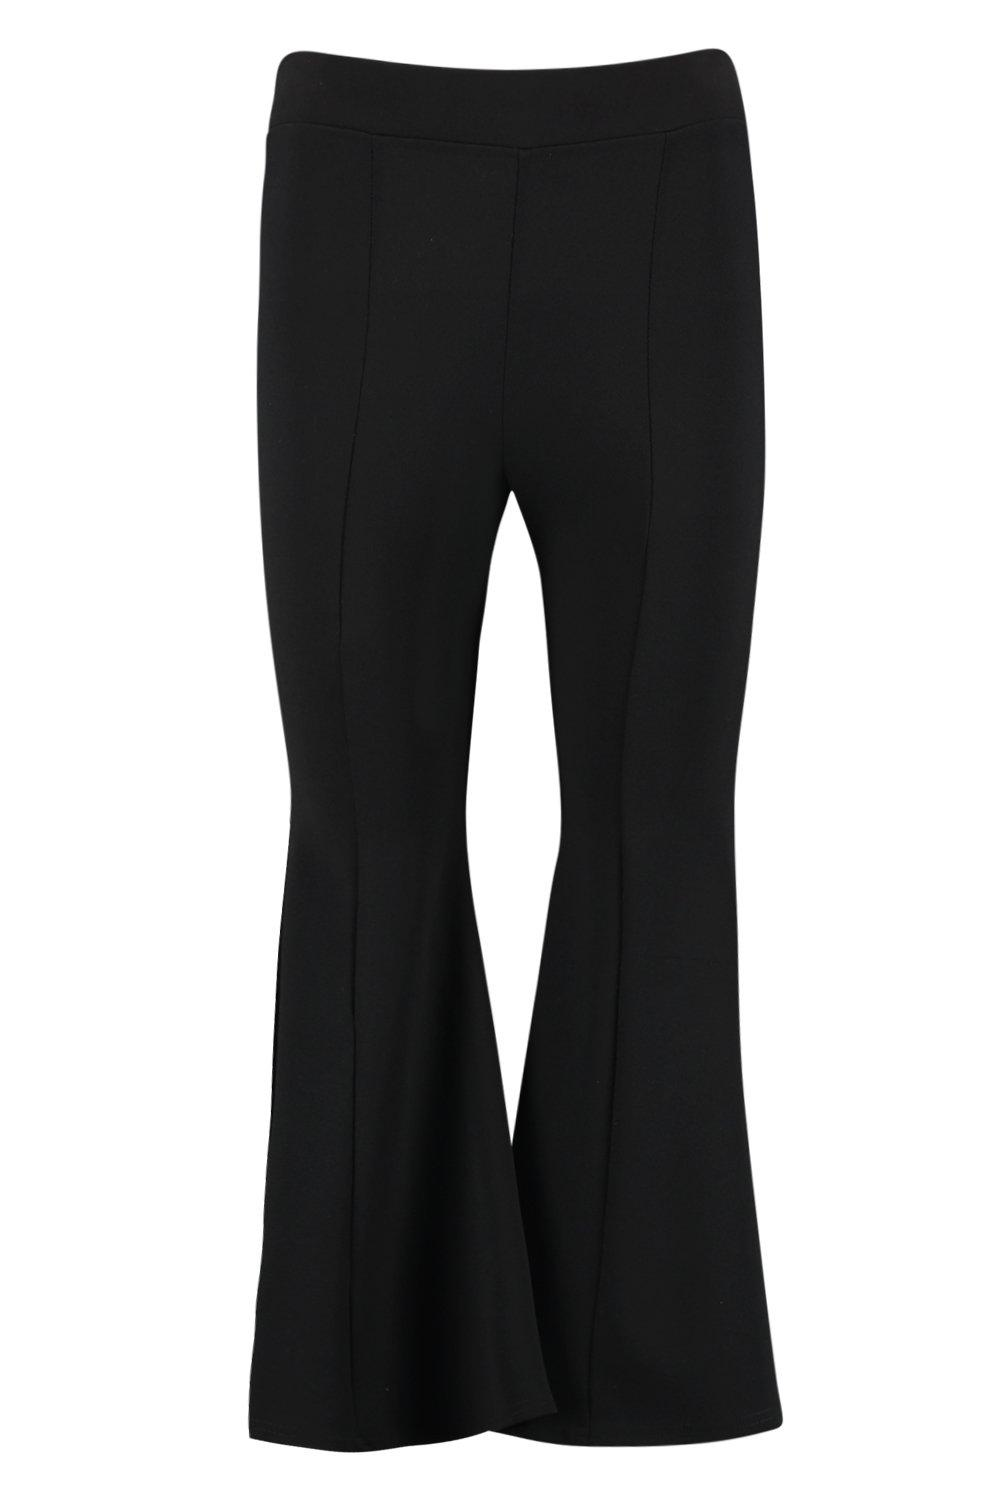 Flare Cropped black Cropped Grazer Flare Ankle zwUSgq